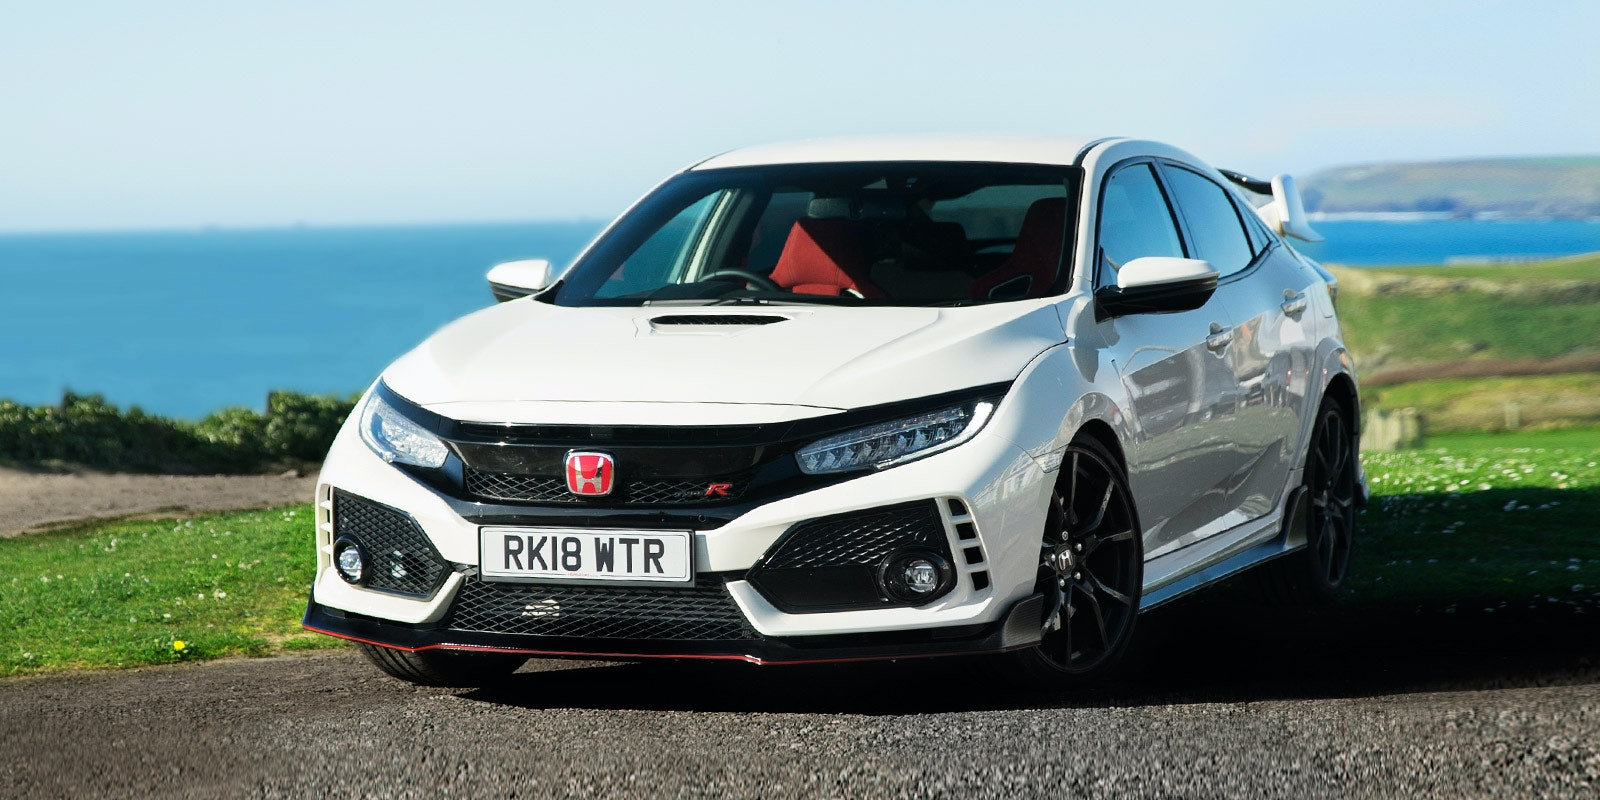 White honda civic type r parked front clifftop 2.jpg?ixlib=rb 1.1